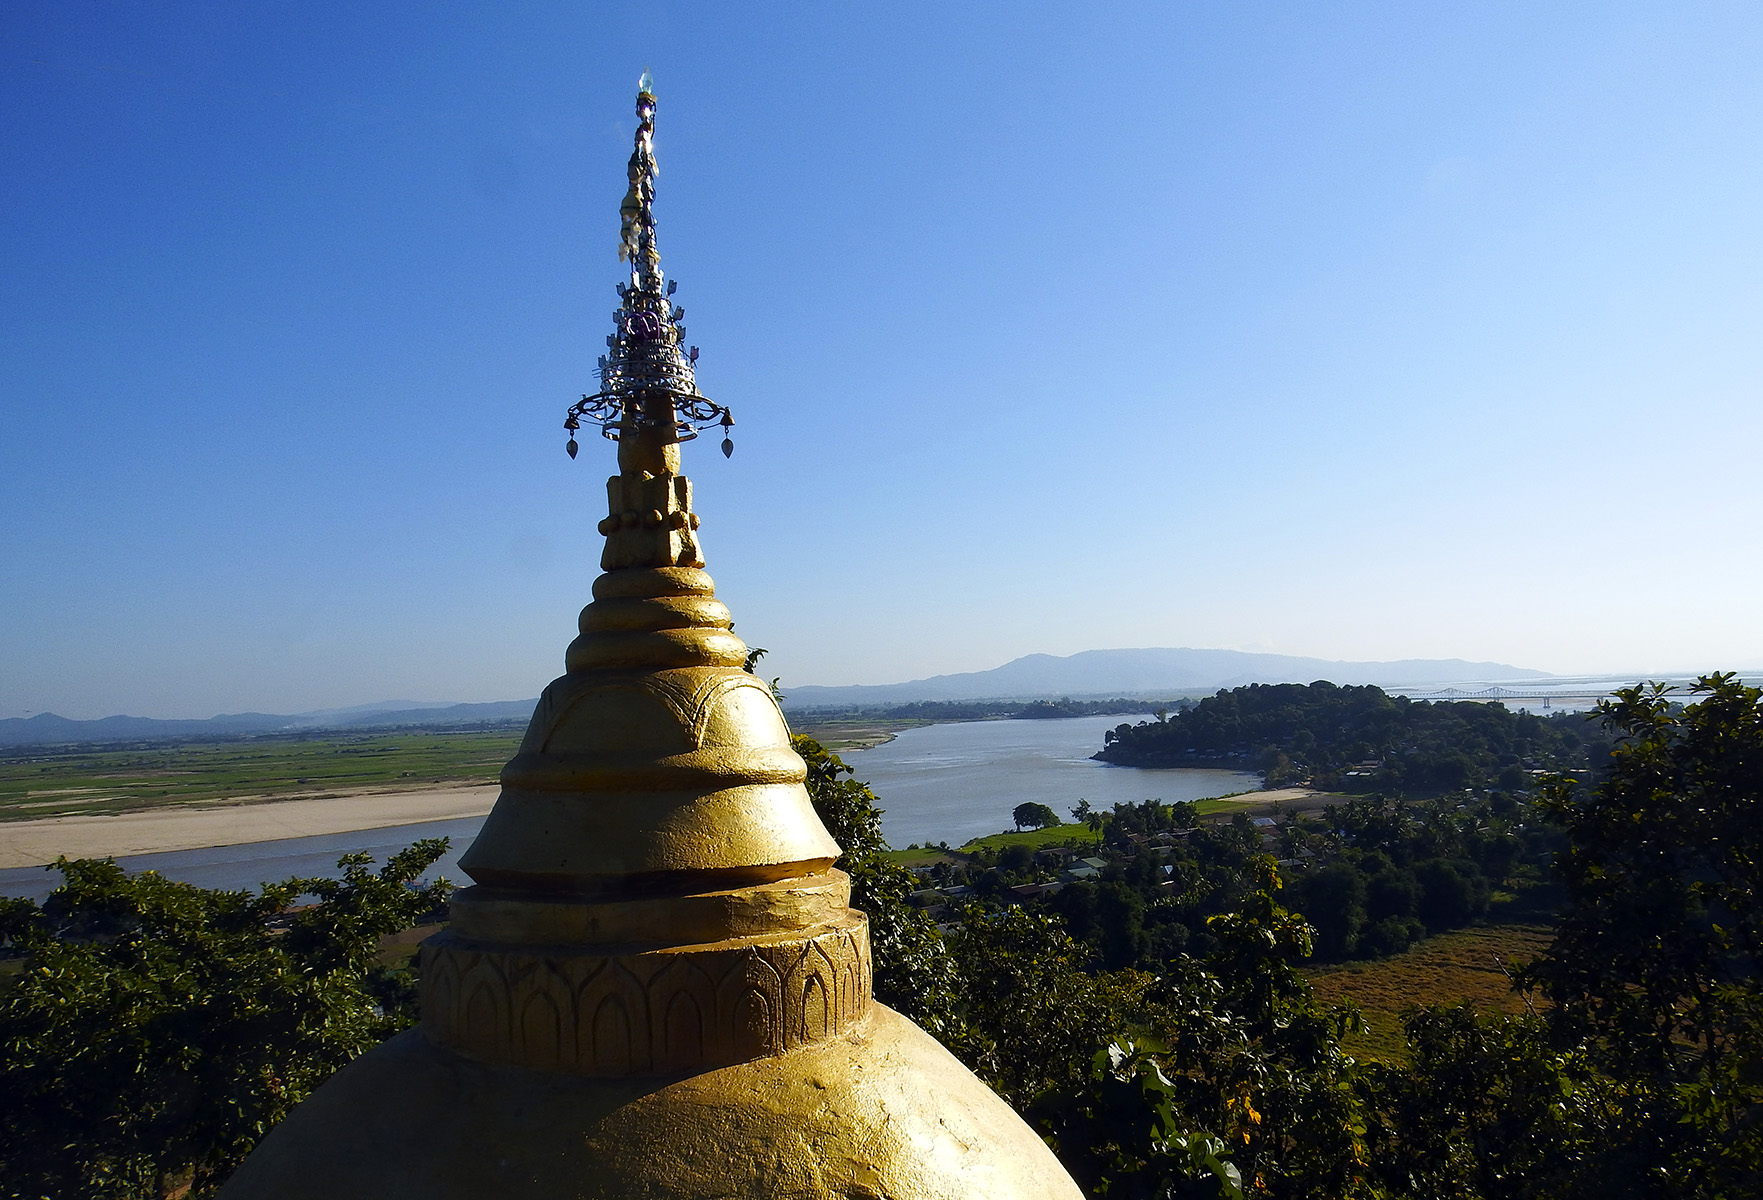 The Irrawaddy river from Tigyang